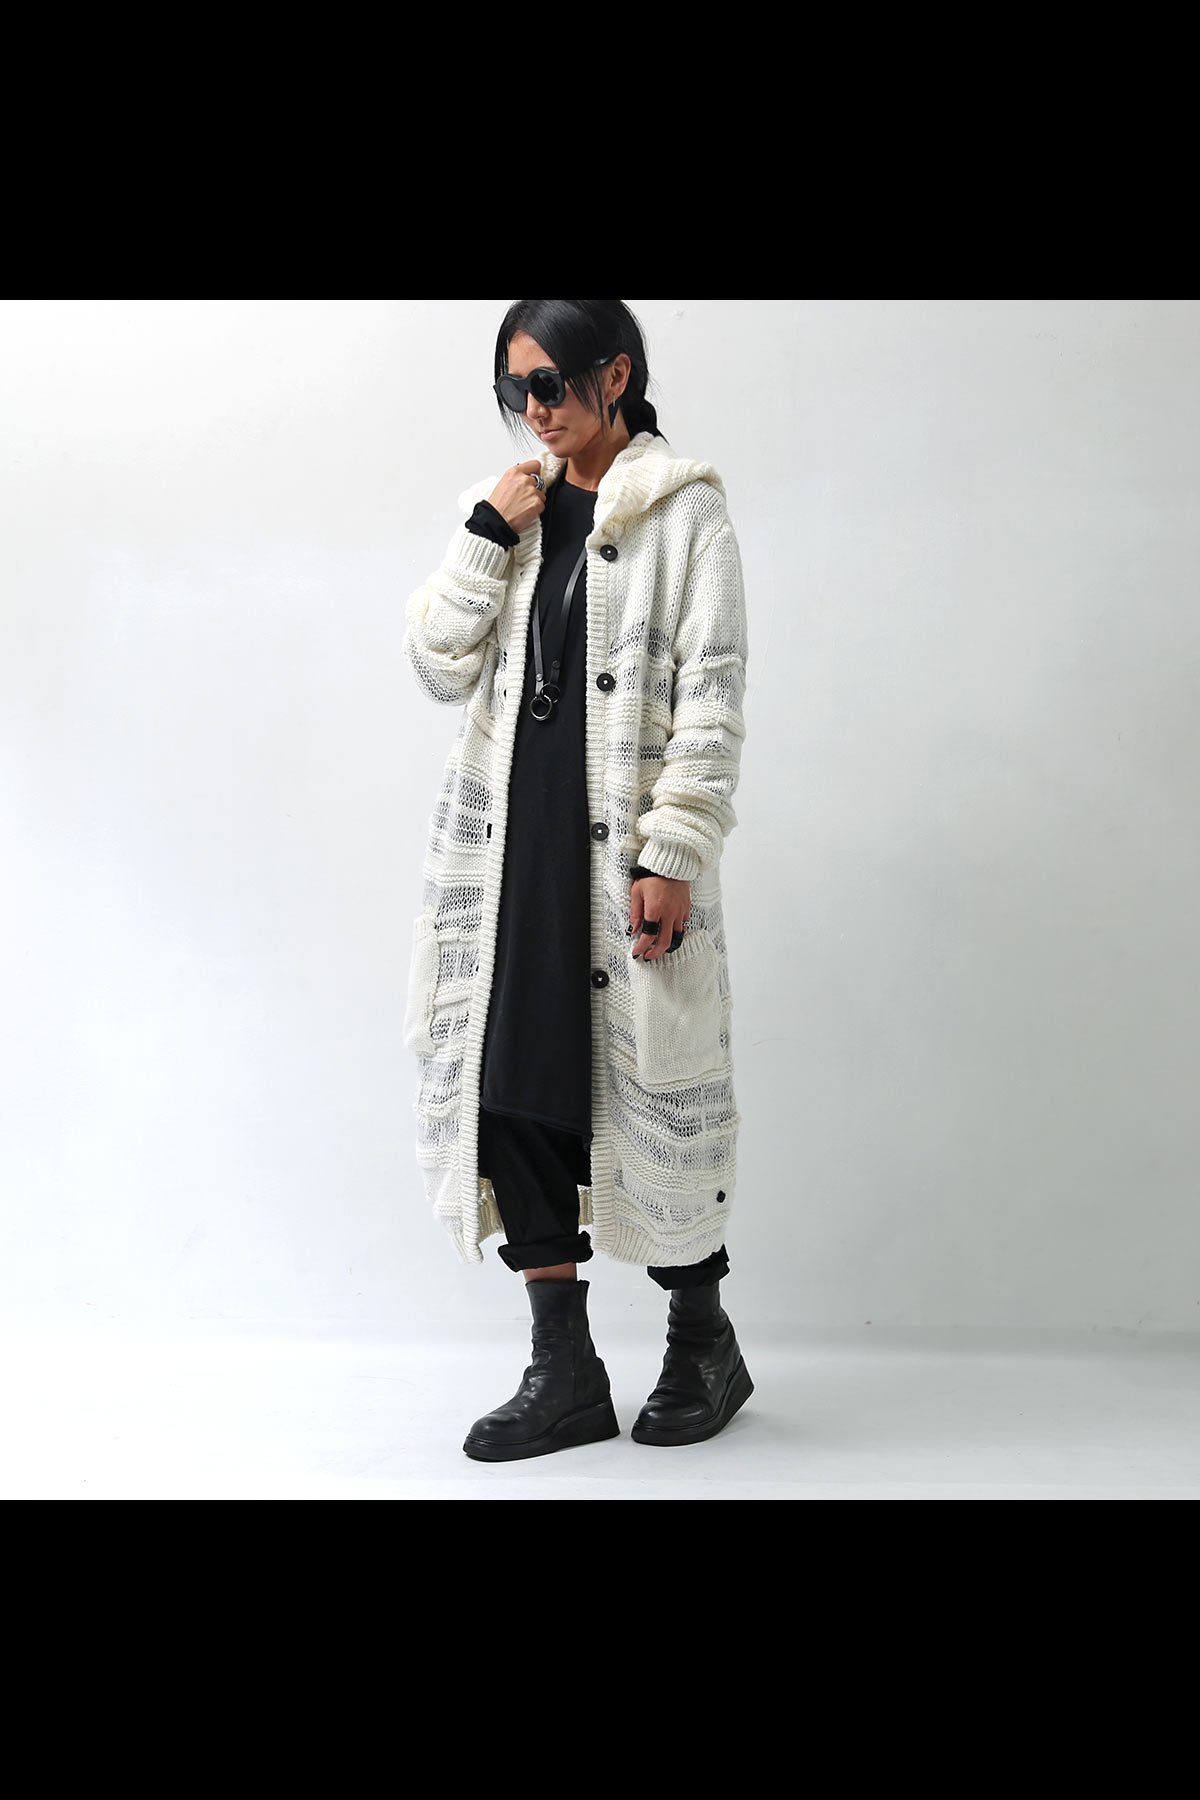 <img class='new_mark_img1' src='https://img.shop-pro.jp/img/new/icons8.gif' style='border:none;display:inline;margin:0px;padding:0px;width:auto;' />KNIT LONG CARDIGAN M02_BIANCO